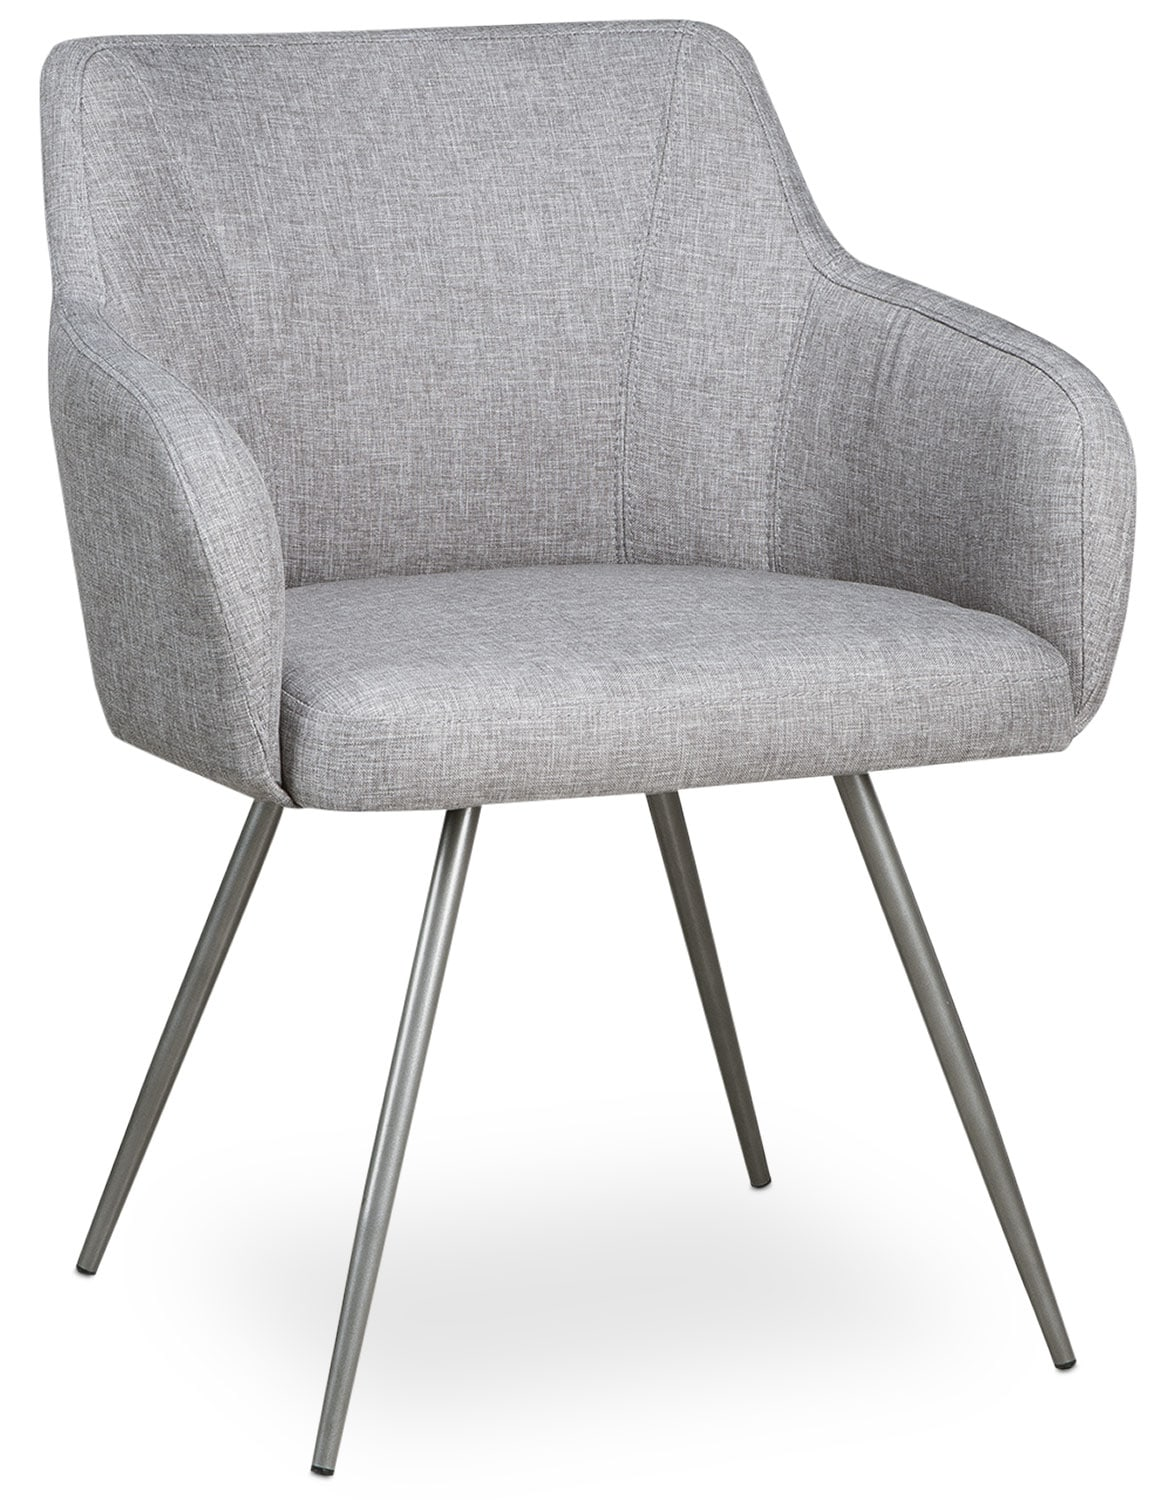 Home Office Furniture - Soft Modern Occasional Chair